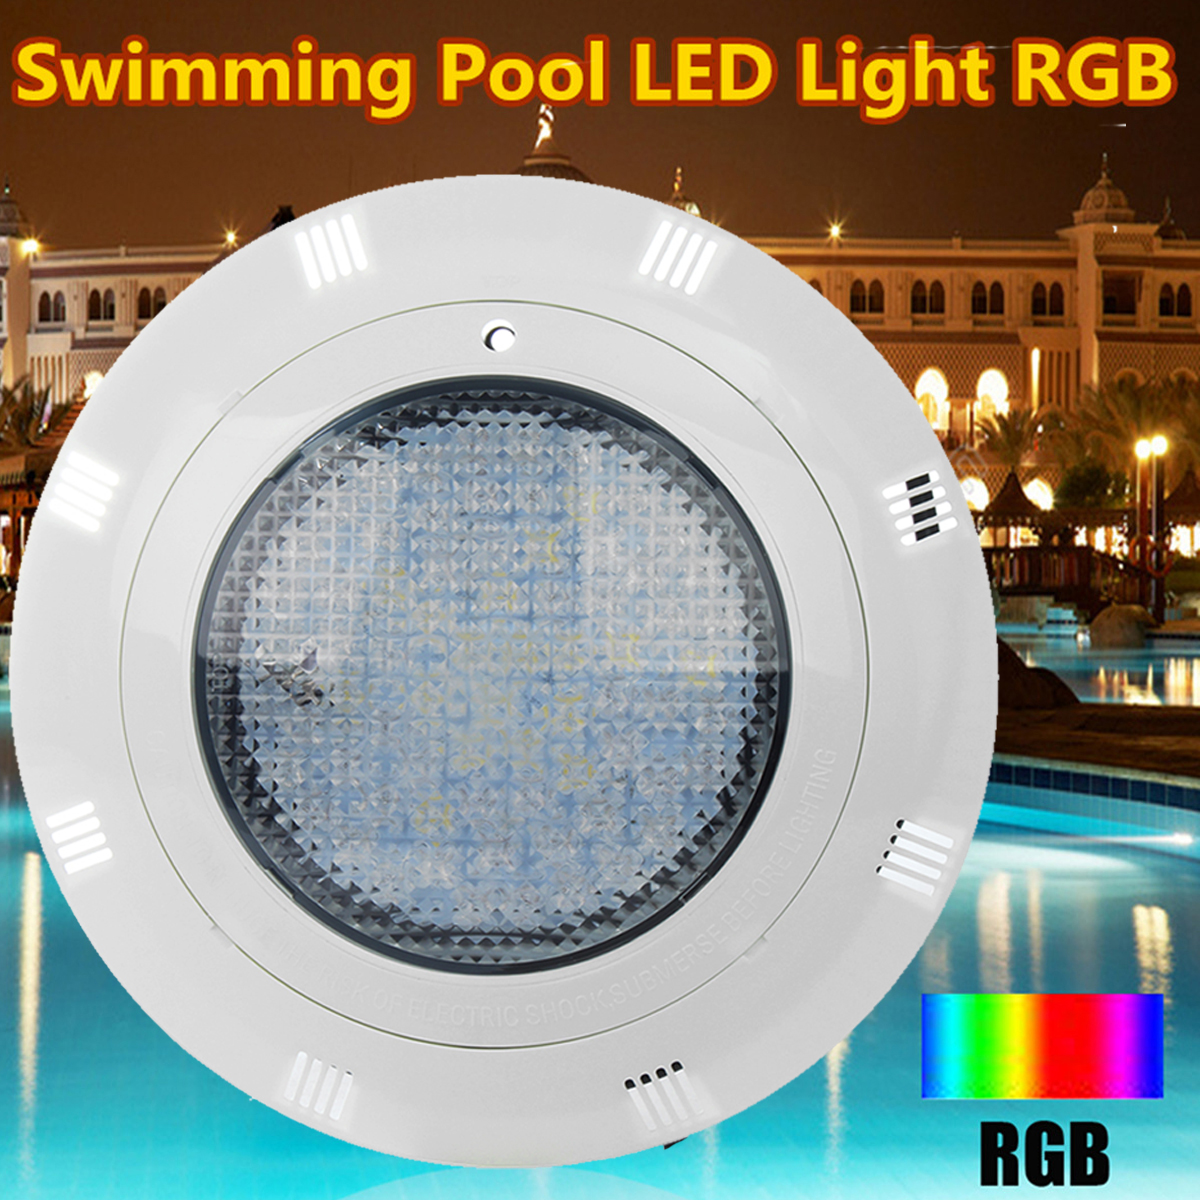 1PC 12V 60W IP68 7 Color RGB Swimming Pool Underrwater LED Light 60pcs LED Lighting with Remote Control